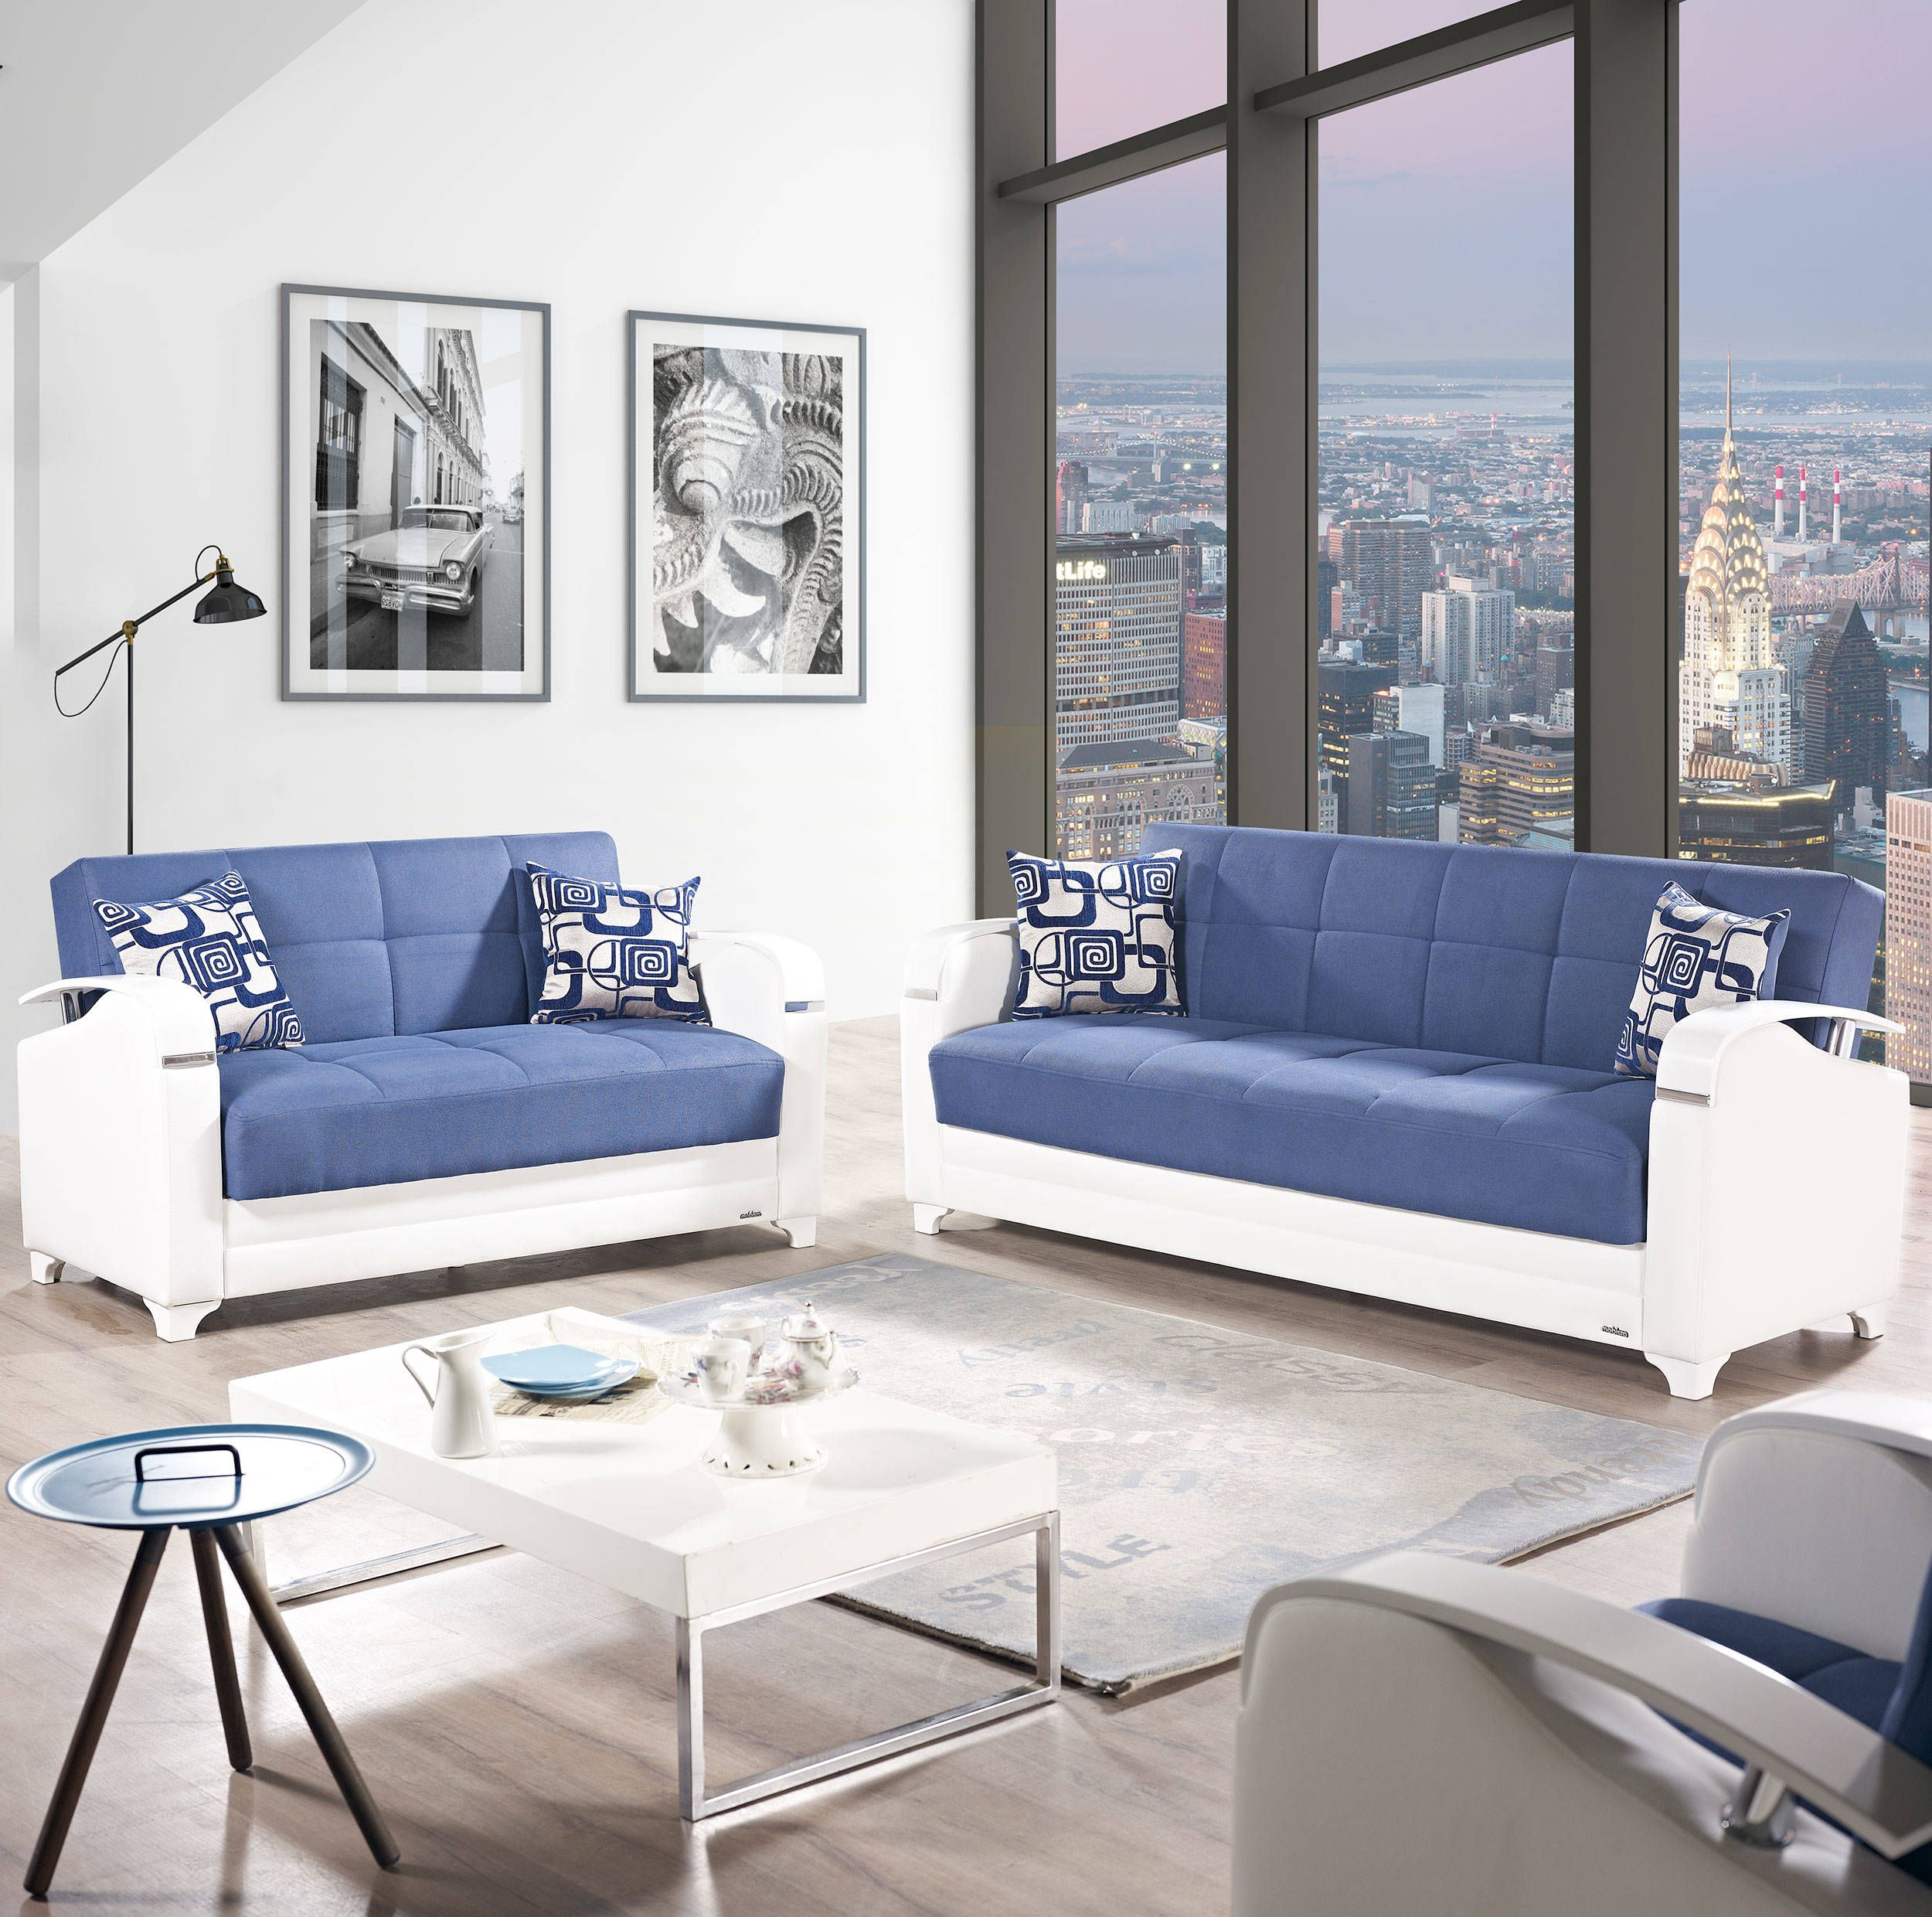 Strange Etro Vintage Navy Blue Fabric Pu Mdf Plywood 3Pc Living Room Download Free Architecture Designs Scobabritishbridgeorg